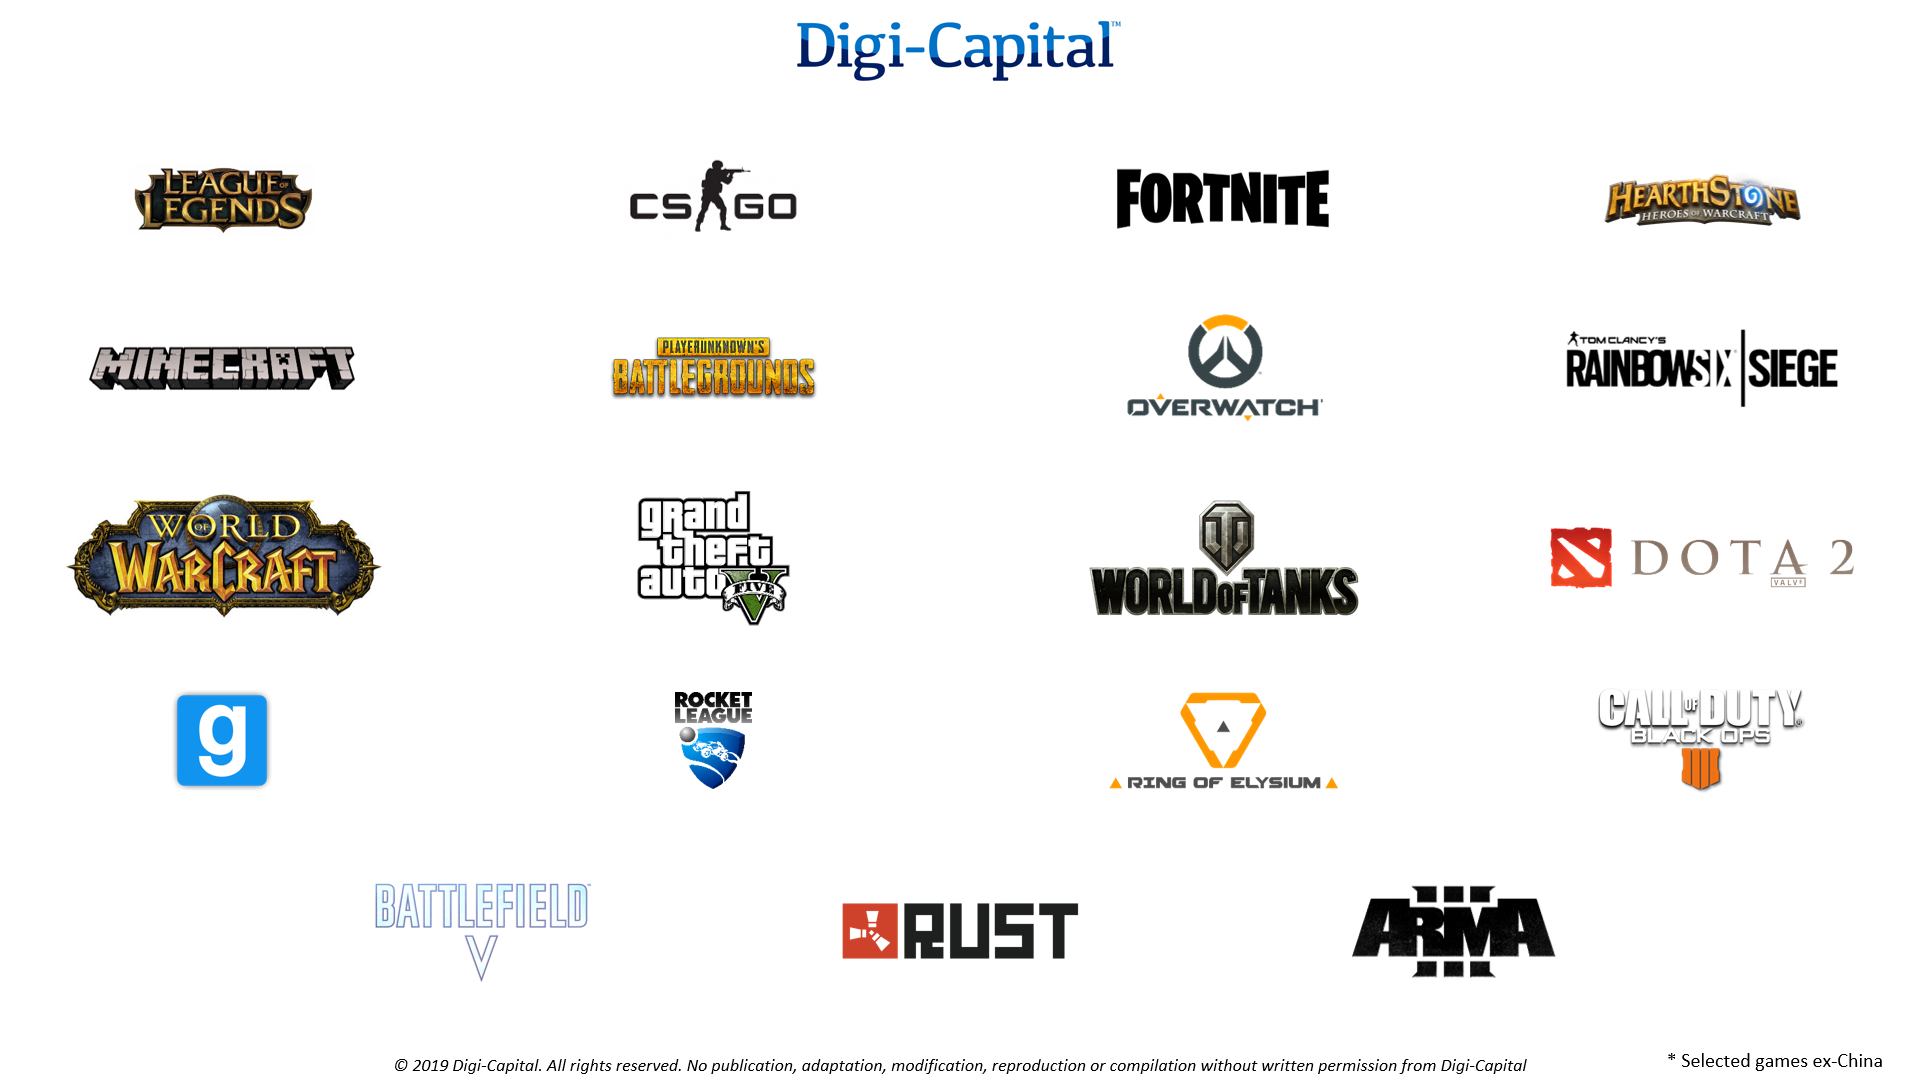 Digi-Capital-Multiplayer-PC-Games.png